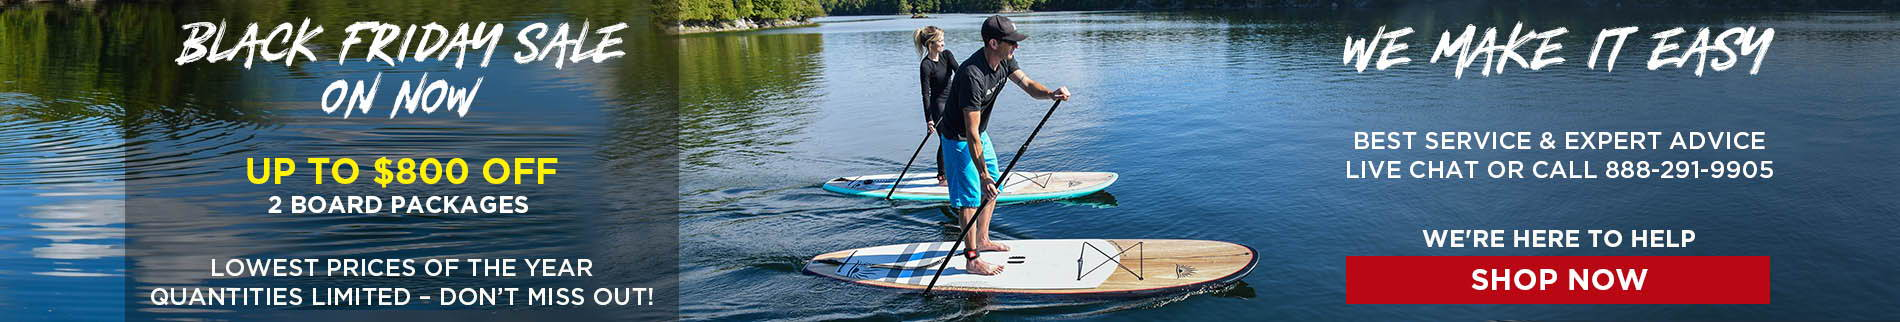 ards | Clearance Sale | Cruiser SUP Blend Ultra-Lite Wood Carbon